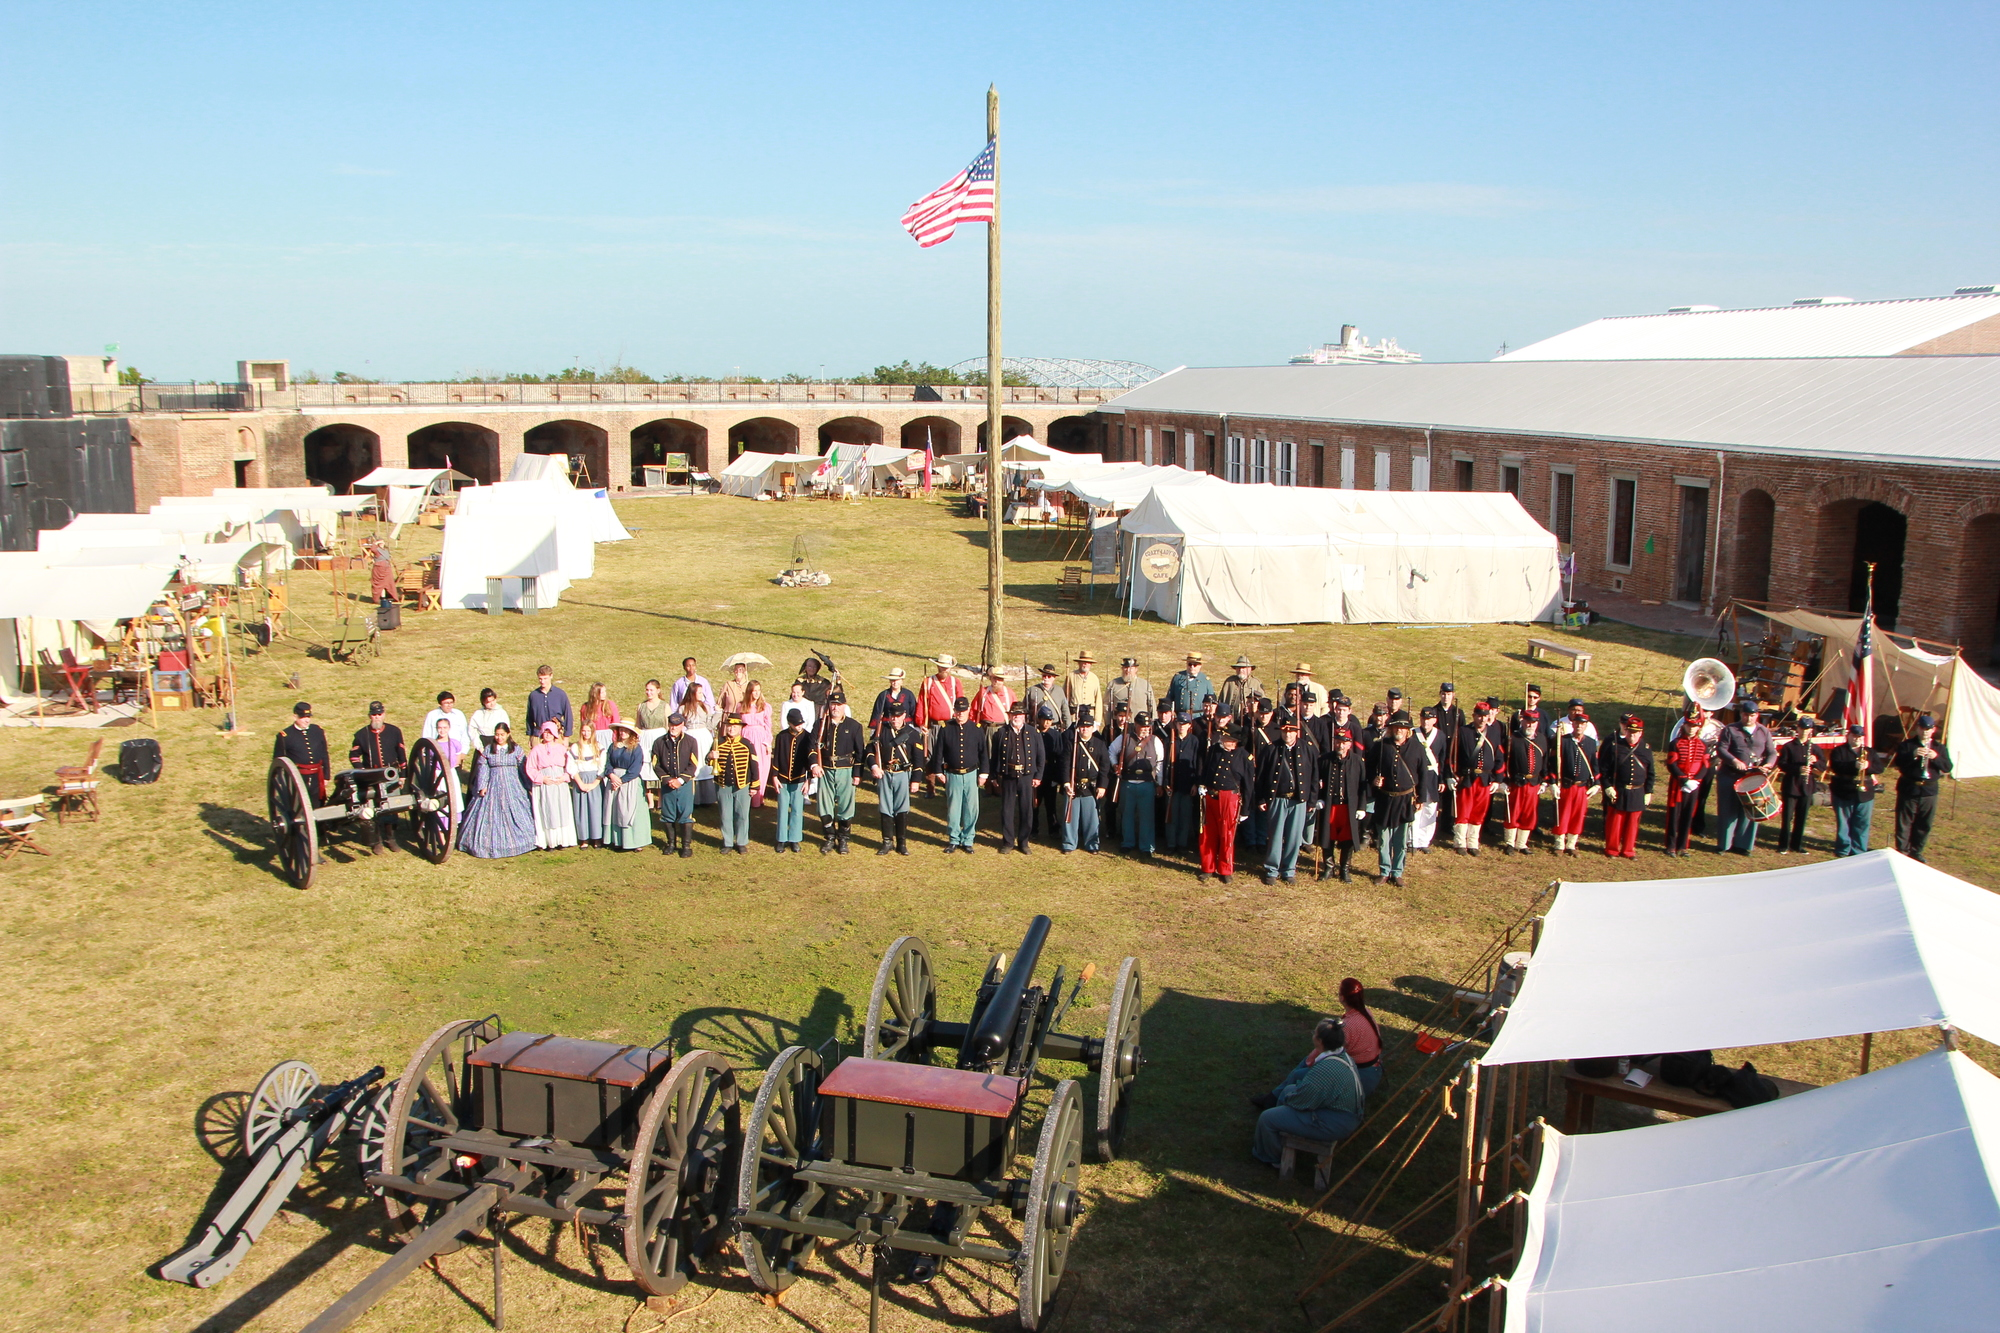 A group picture of Civil War reenacters